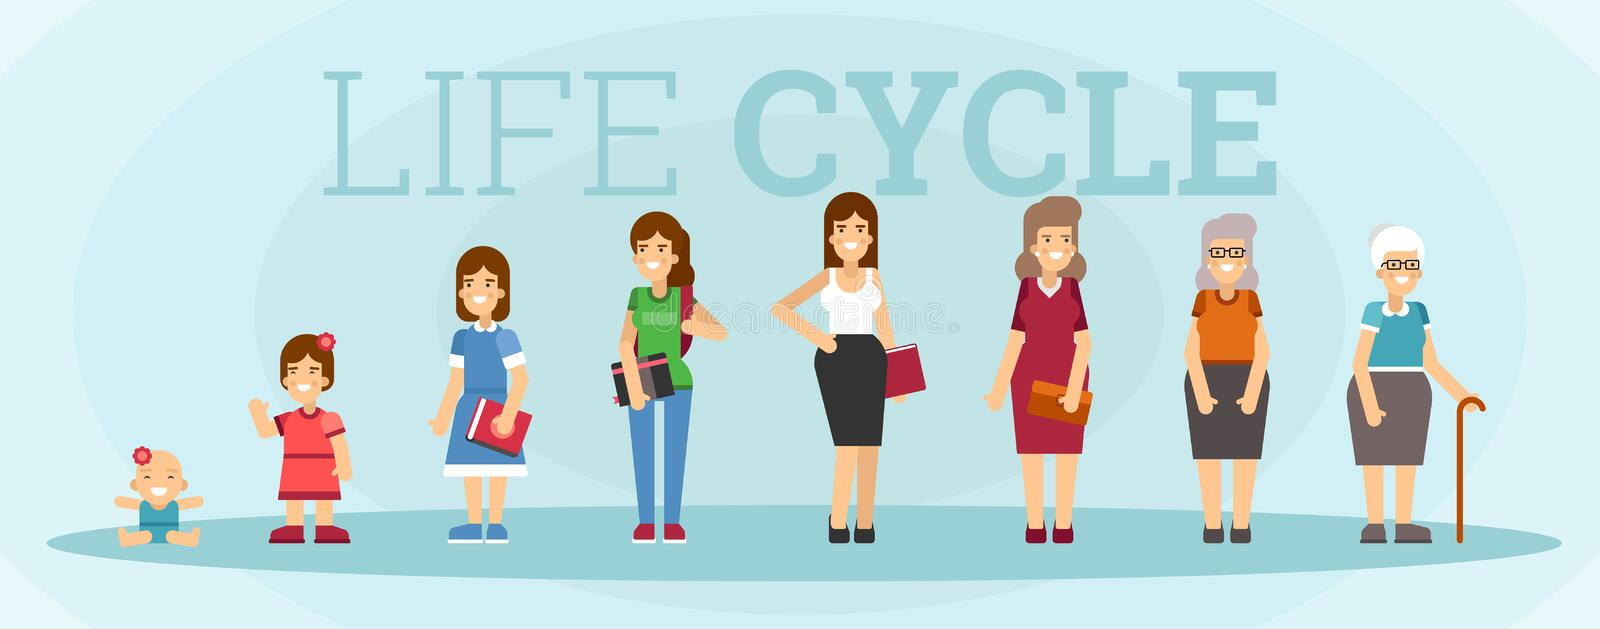 Woman character life cycle royalty free illustration